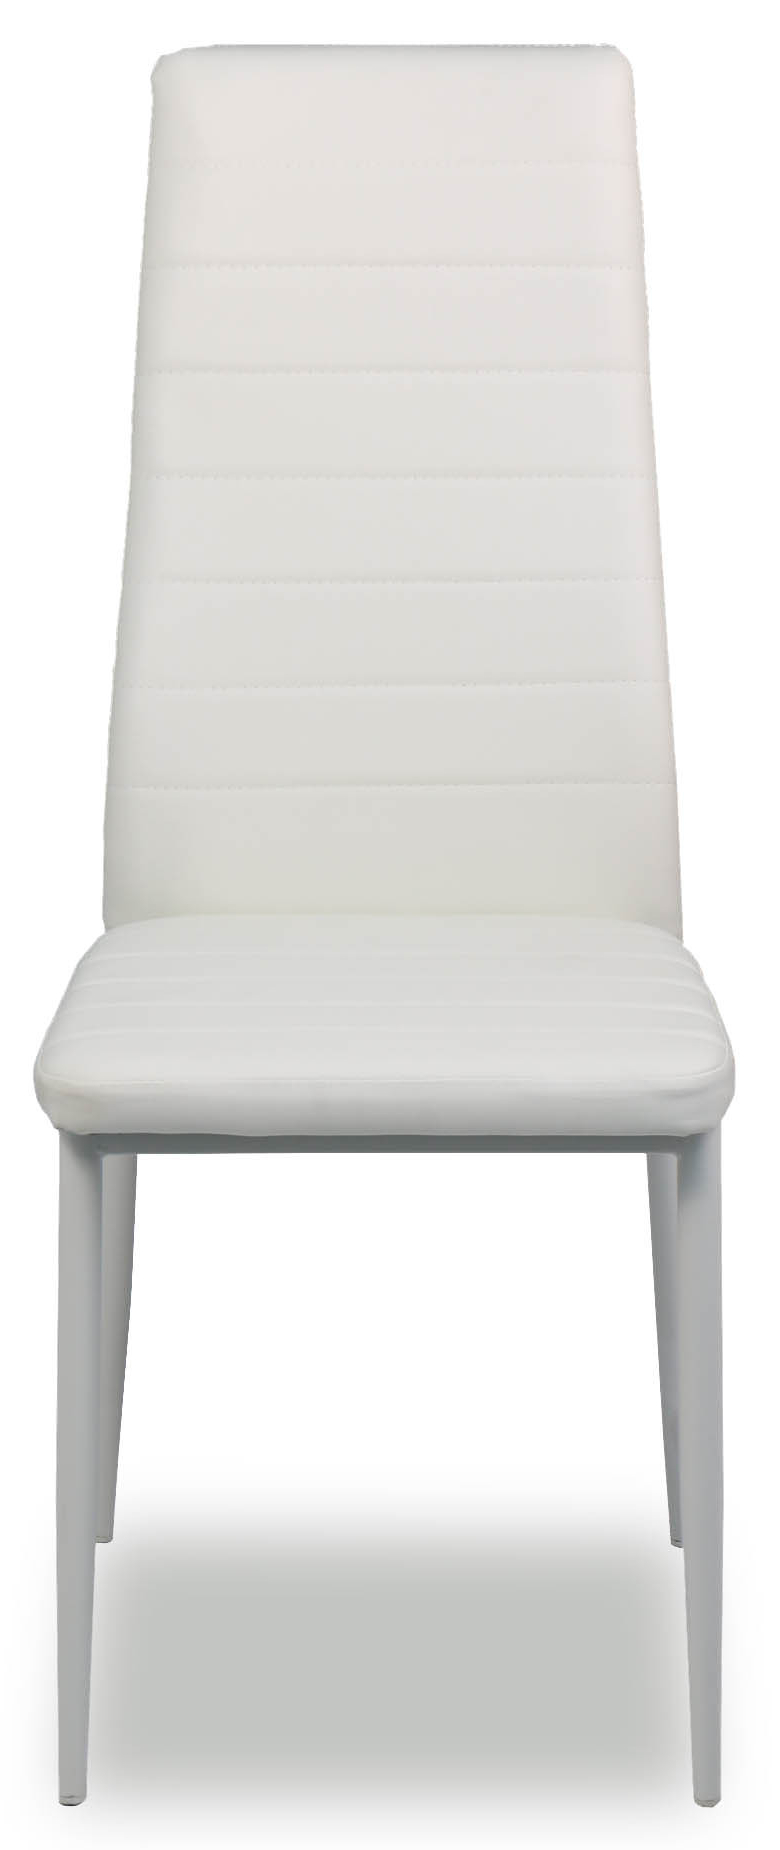 Quinn Dining Chair White (View 17 of 20)